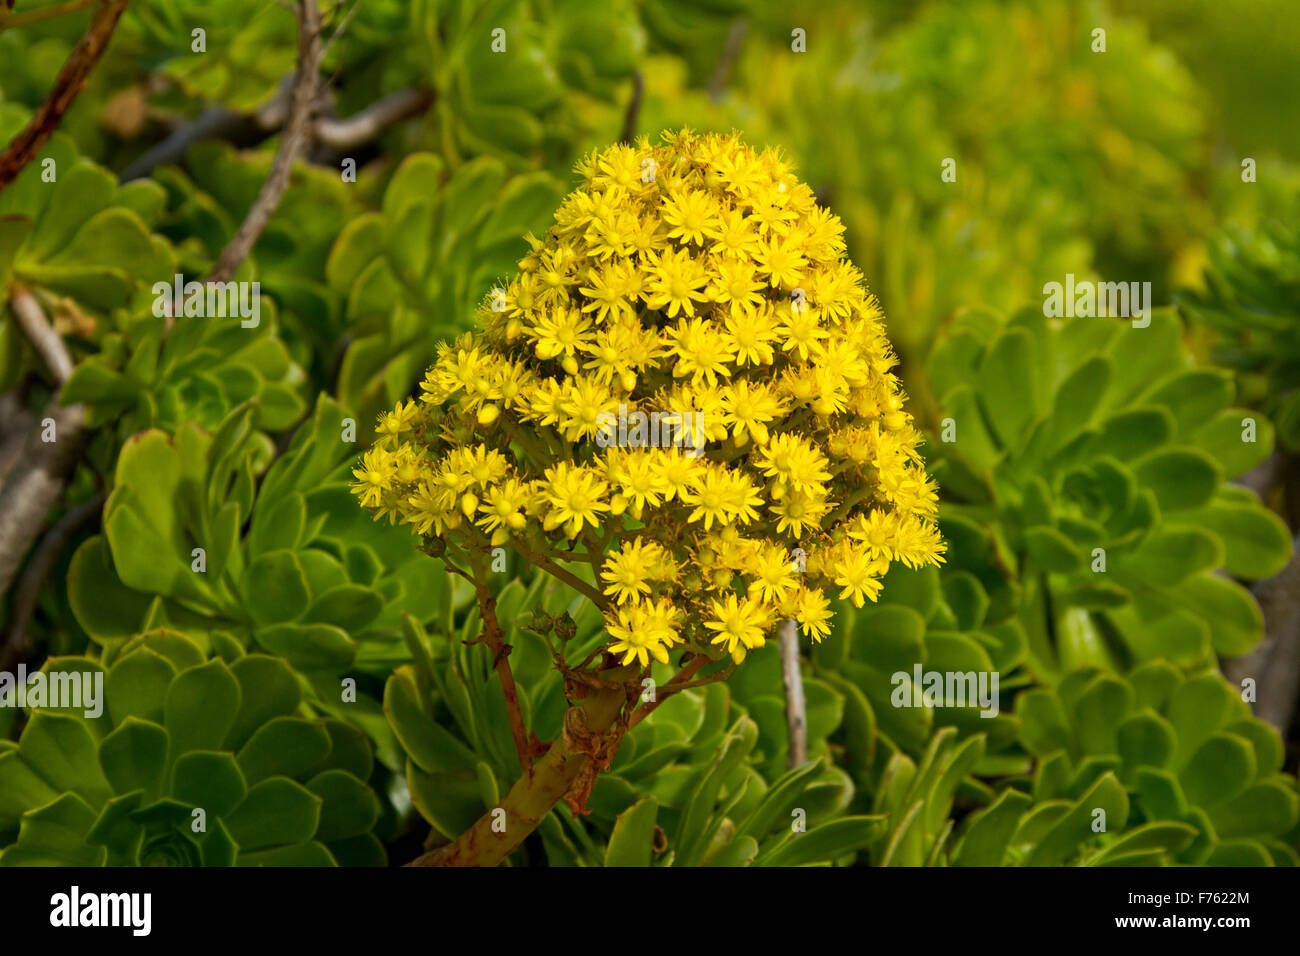 Flower Aeonium Arboreum Stock Photos Flower Aeonium Arboreum Stock